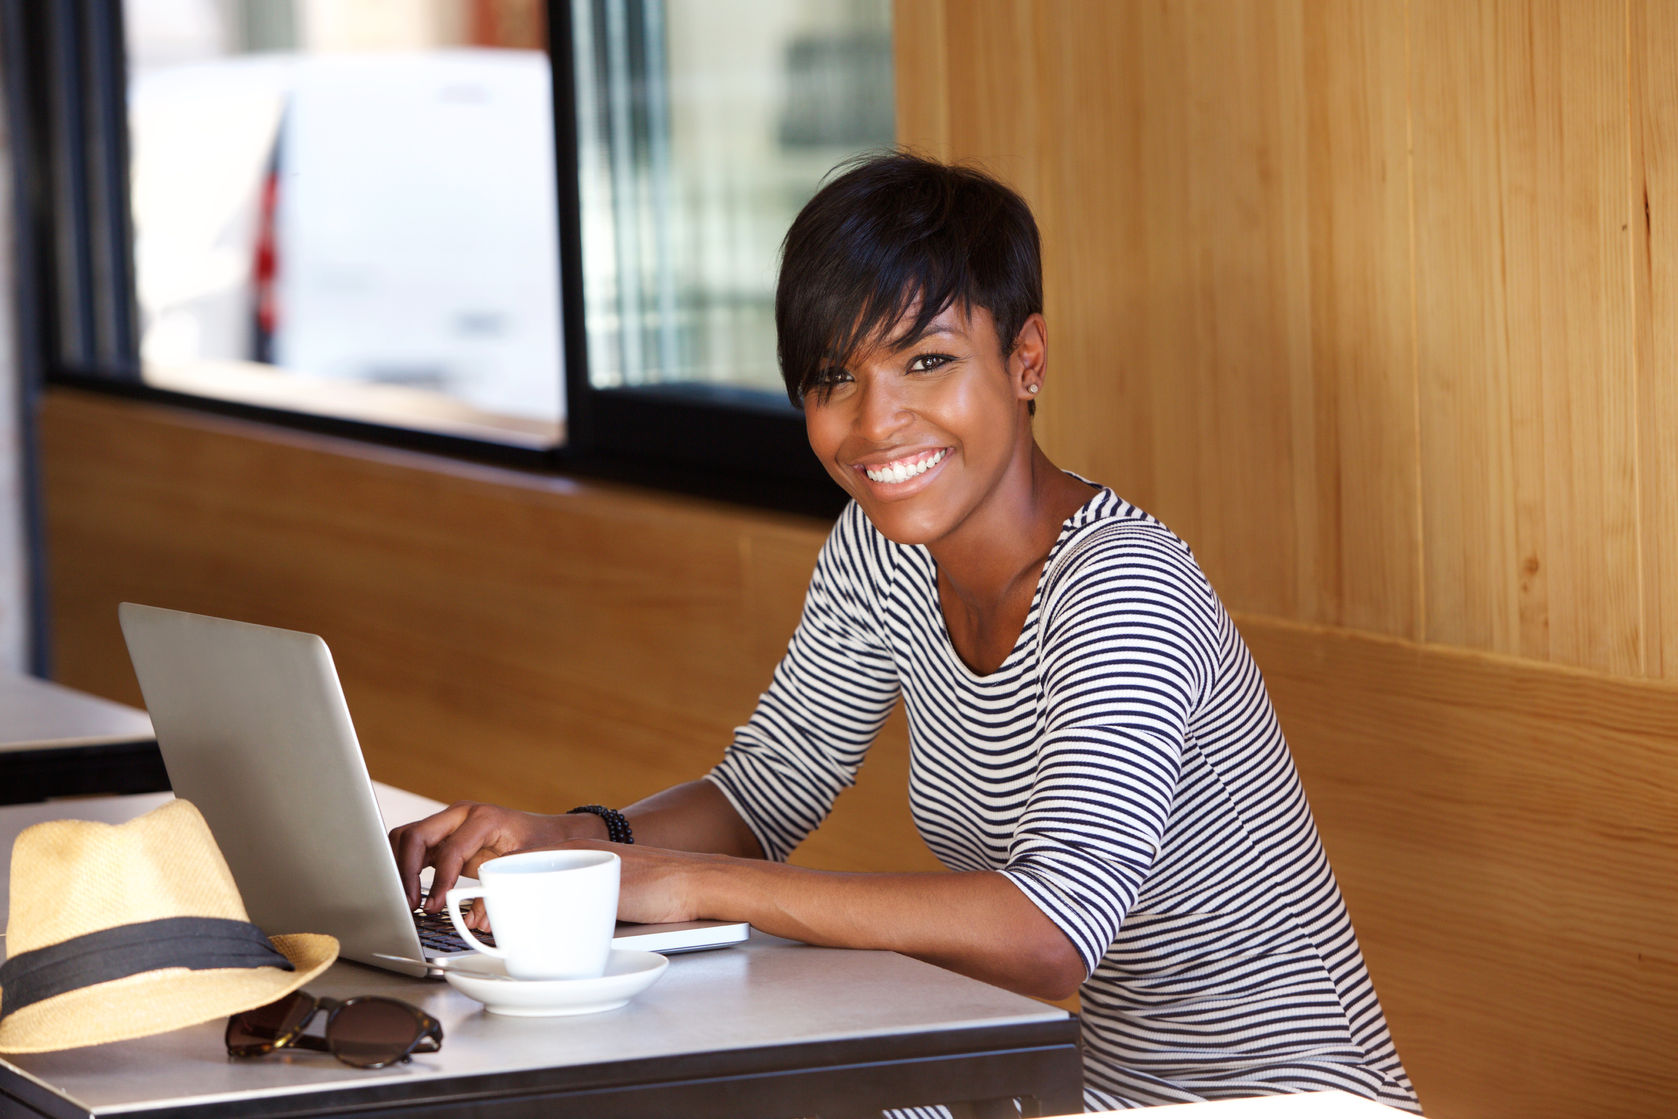 Portrait of a smiling young black woman using laptop